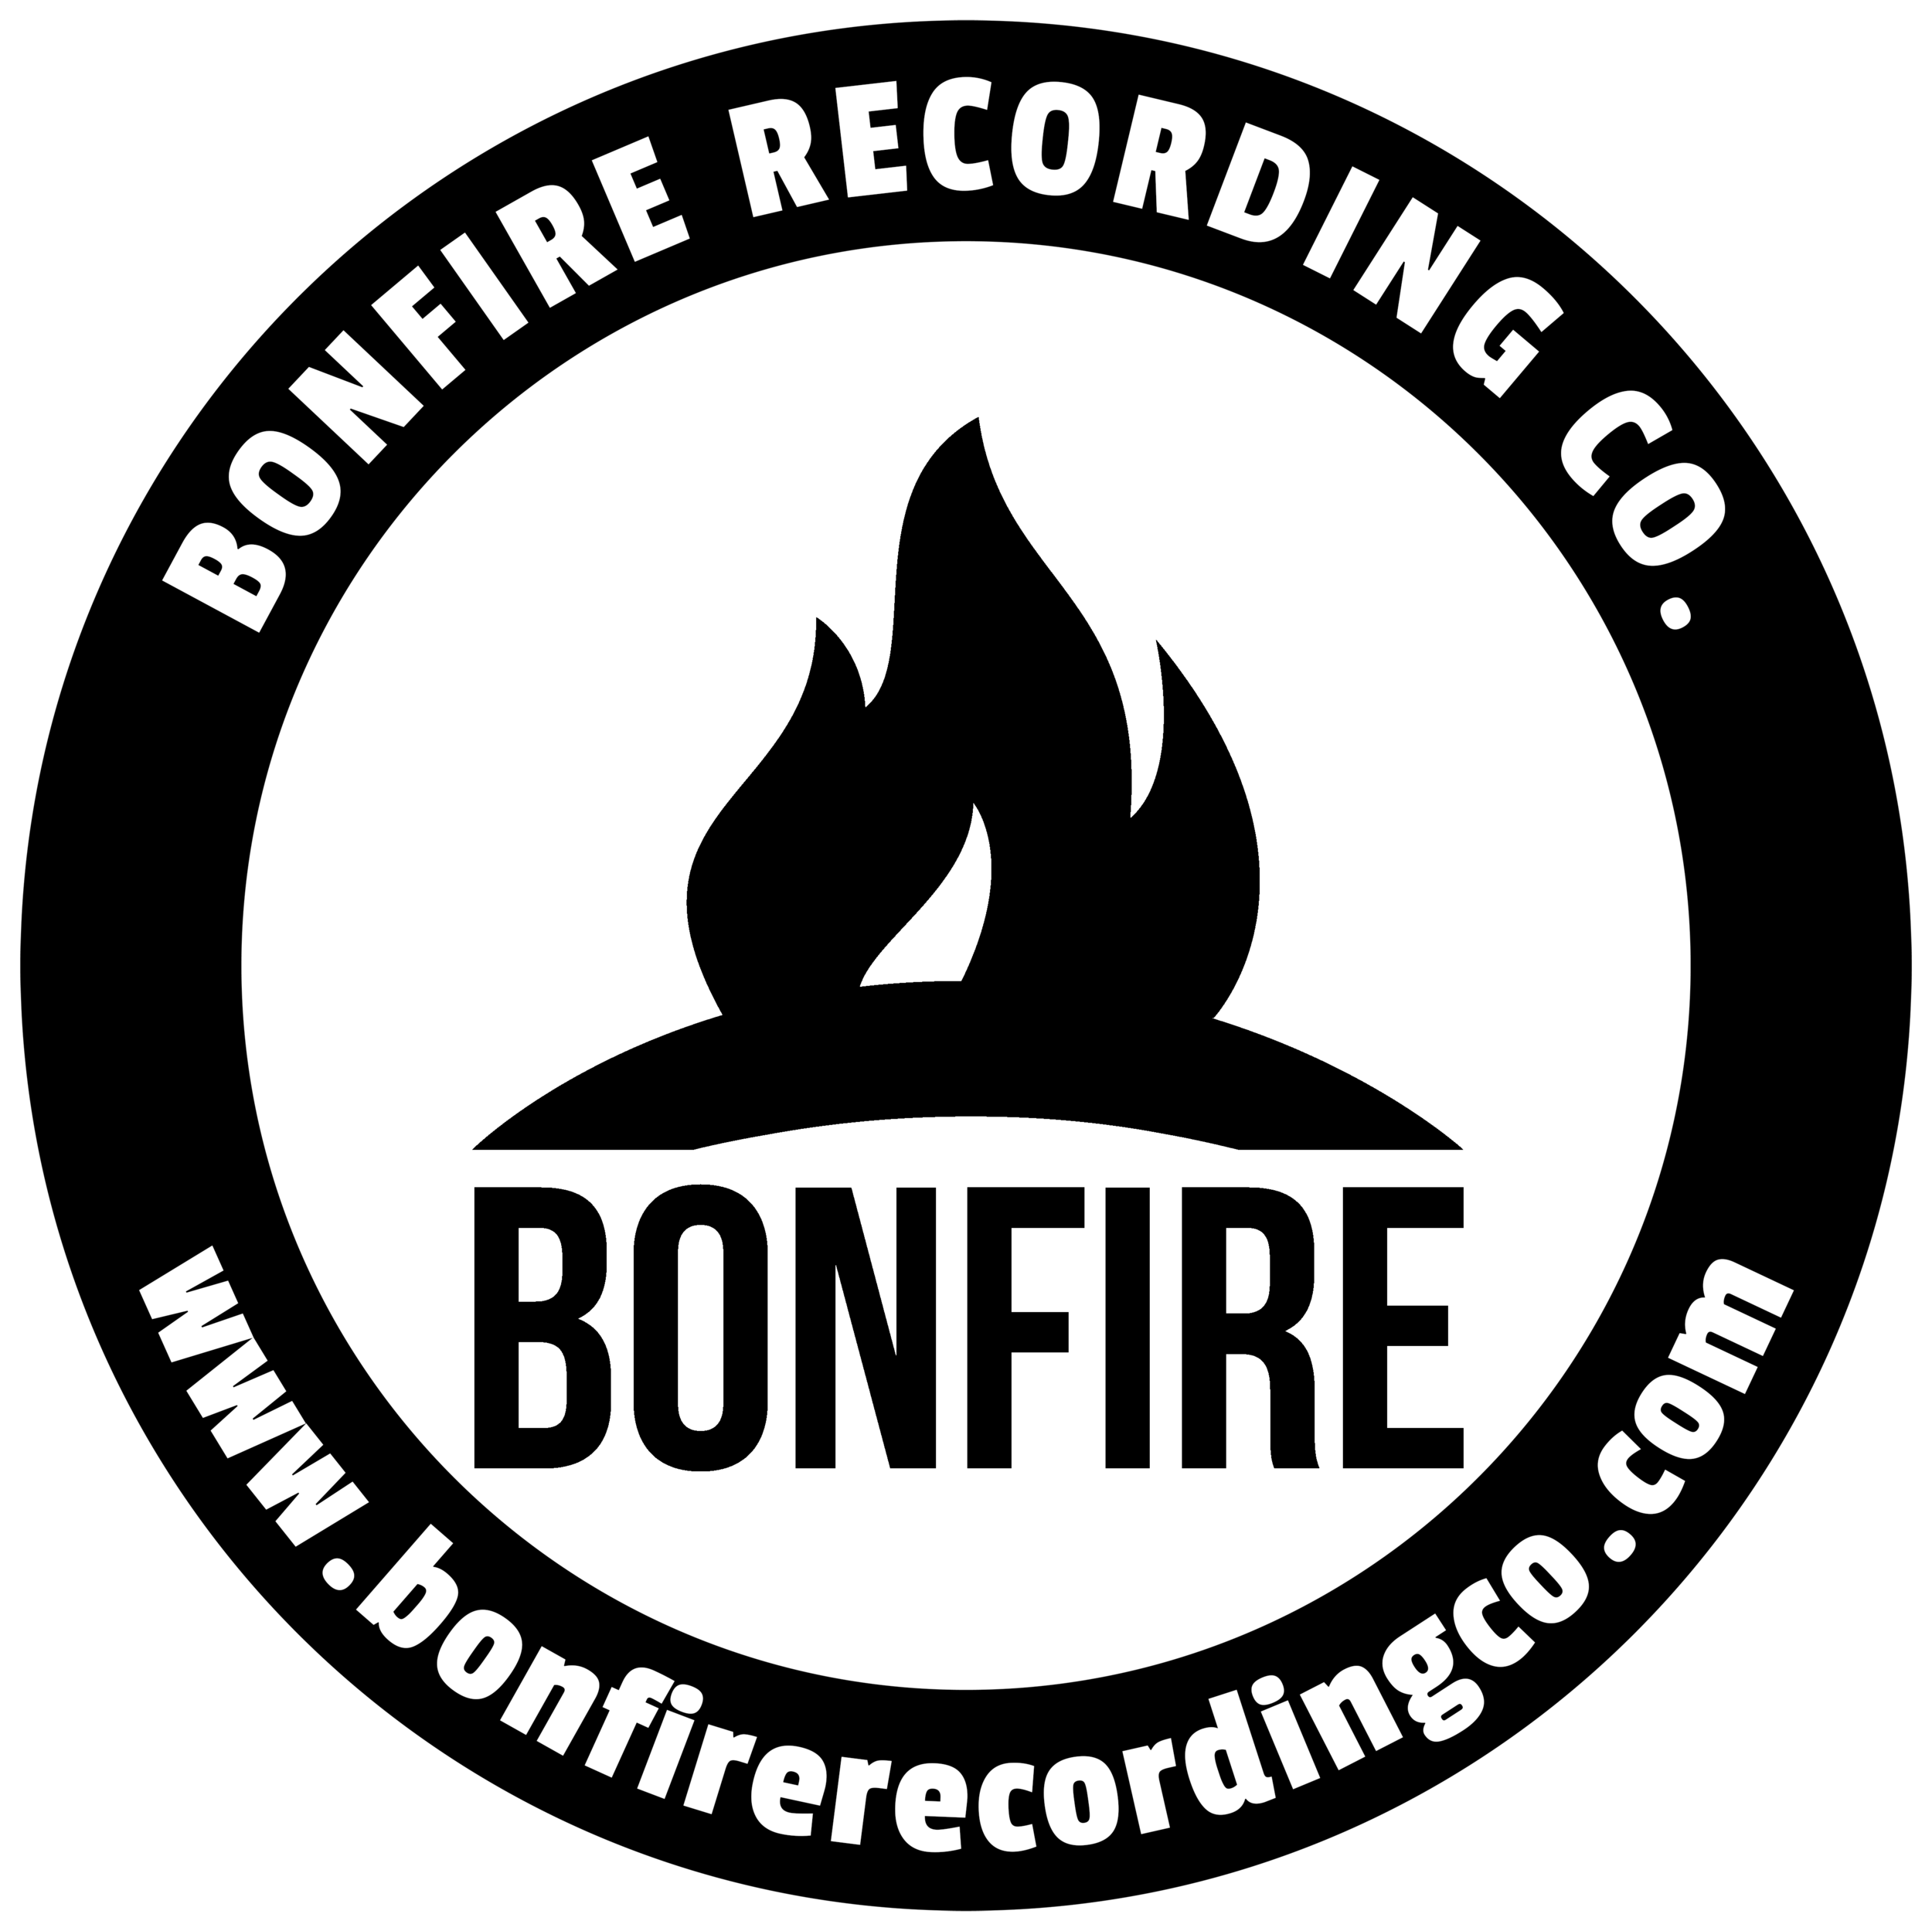 scott-slay-bonfire-recording-co-pinecastle-records-bluegrass-music